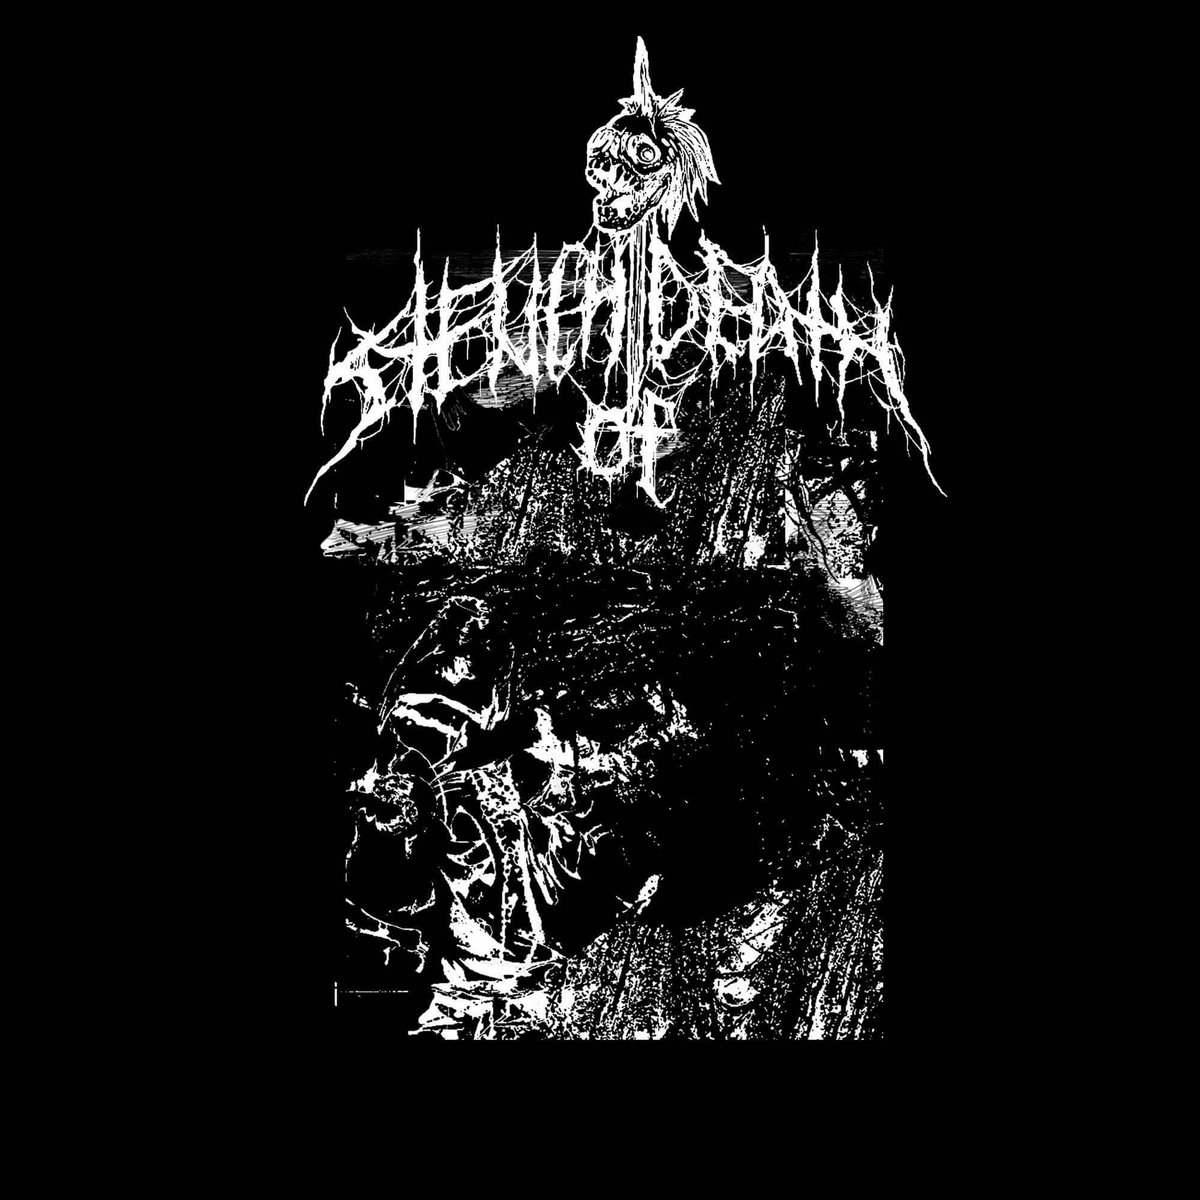 Stench of Death - Untitled